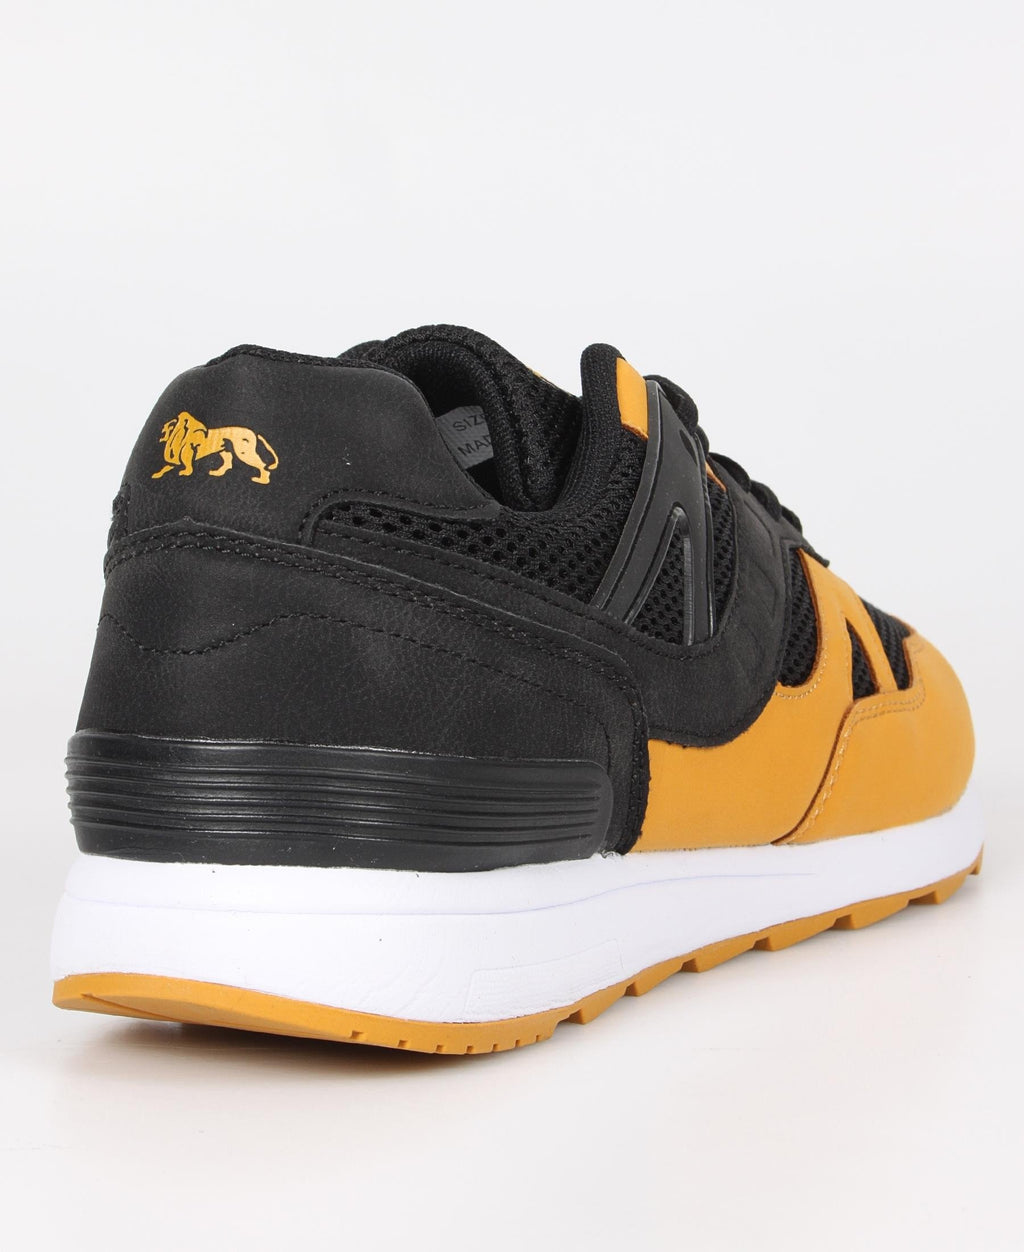 Men's Charged Sneakers - Black